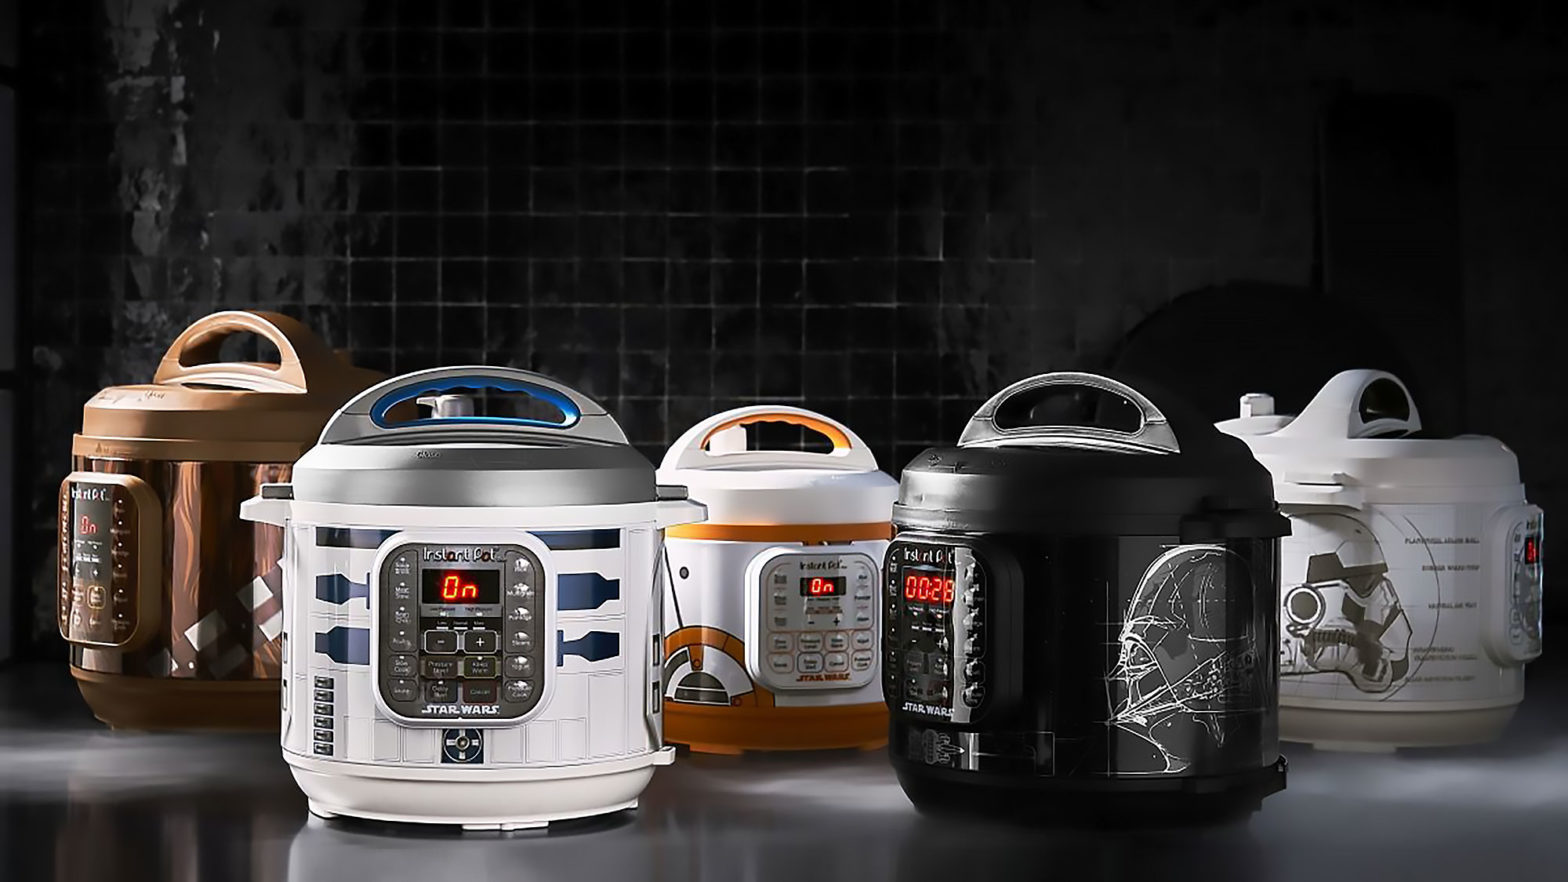 Williams Sonoma Star Wars x Instant Pots